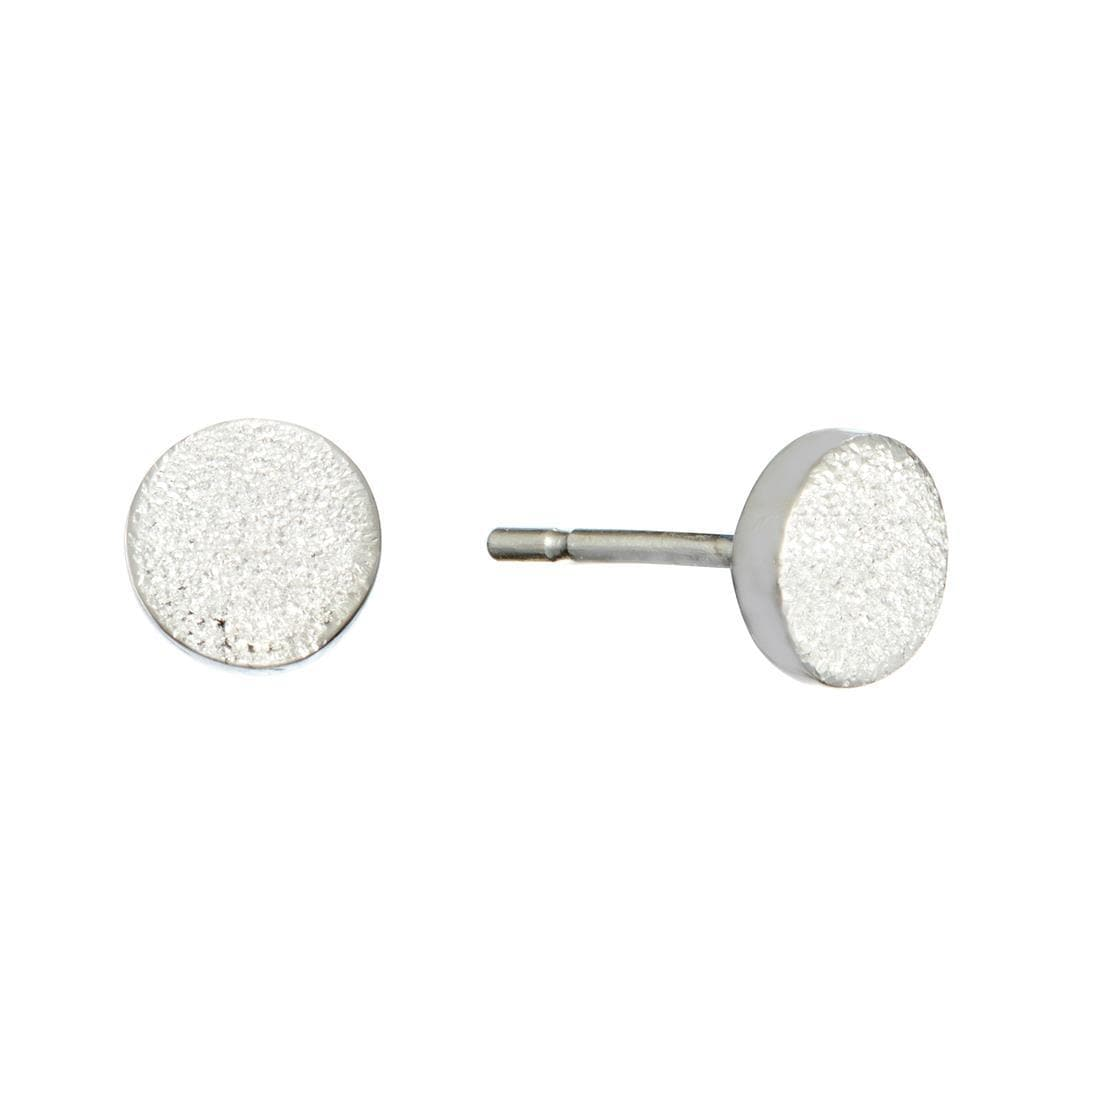 classic p round rh earrings elegant small